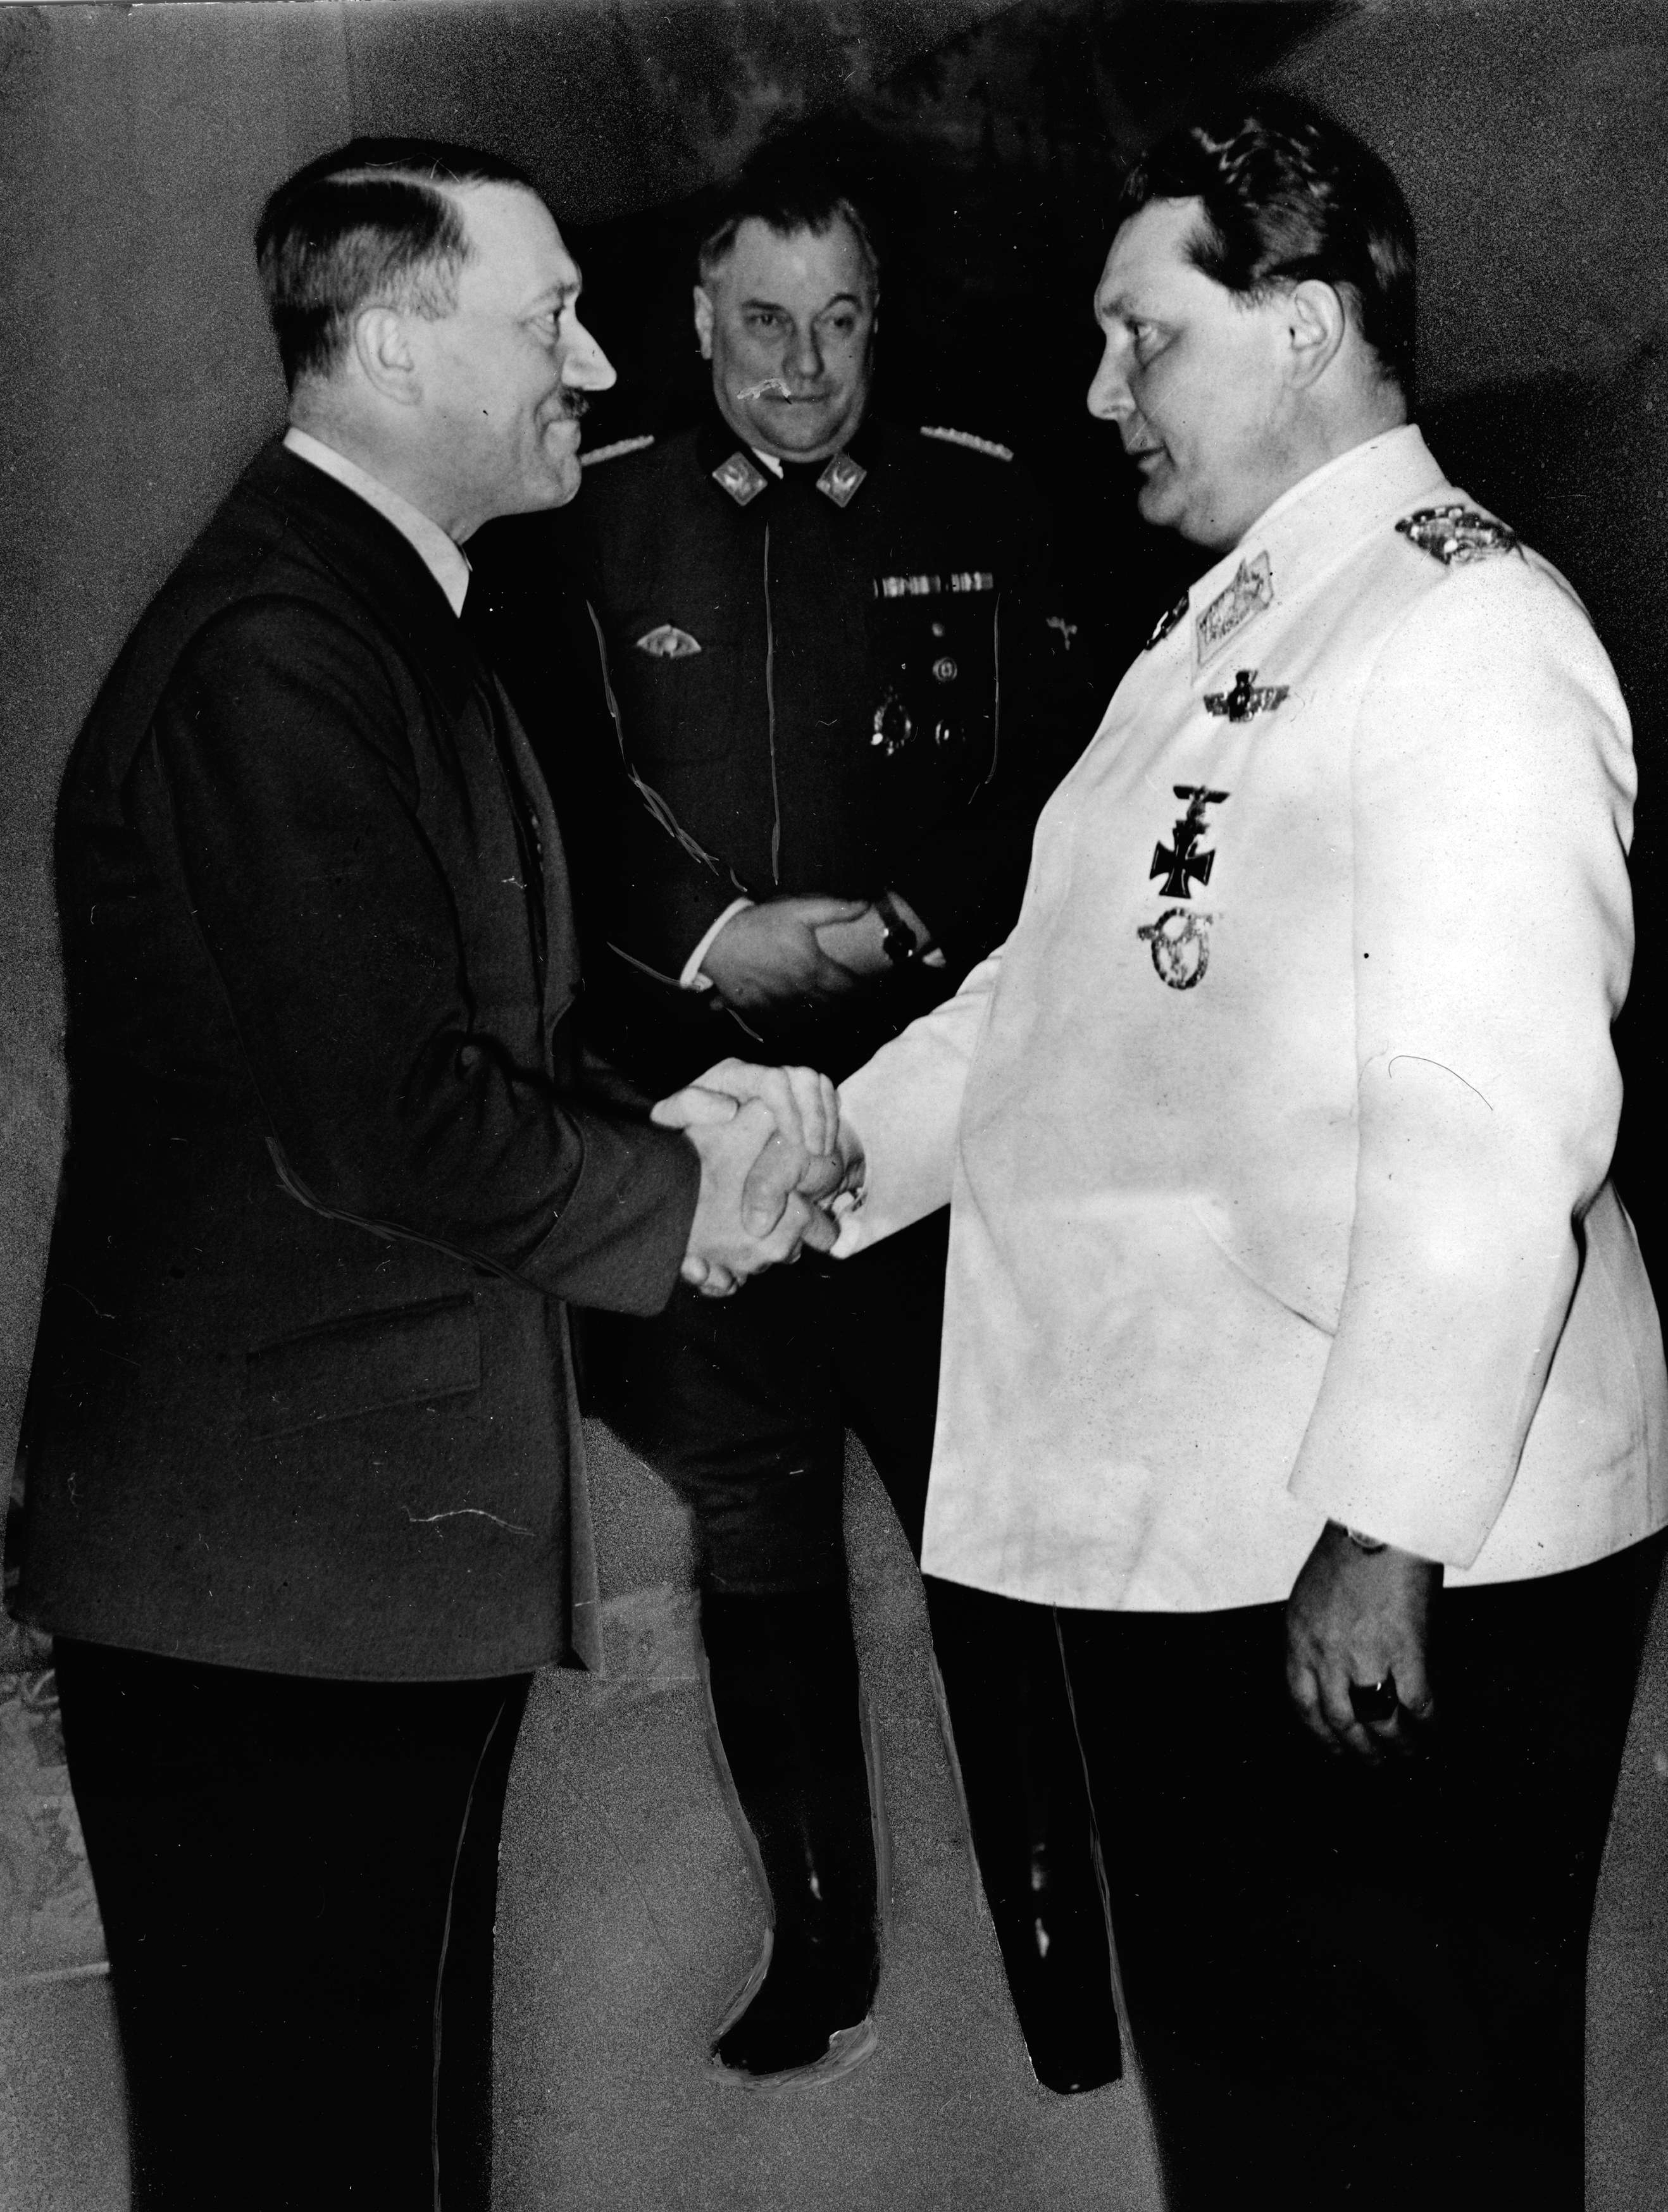 Adolf Hitler congratulates Field Marshal Hermann Goering on his 47th birthday